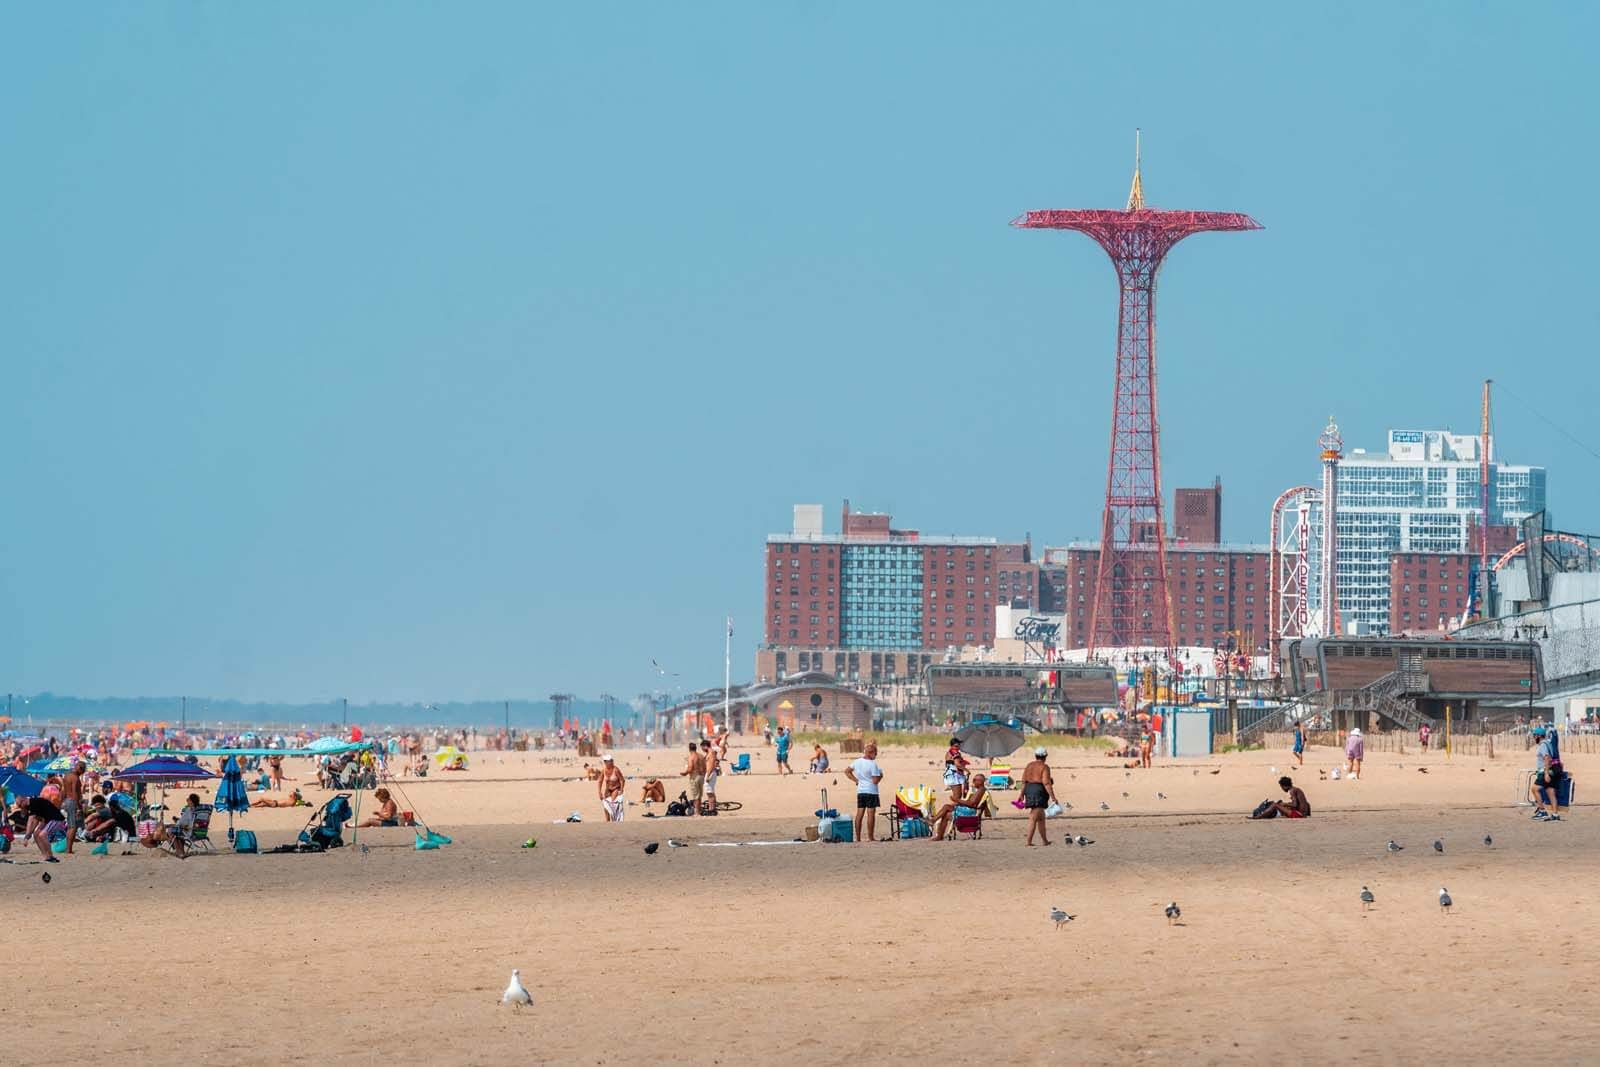 Brighton Beach in Brooklyn with Coney Island in the backdrop